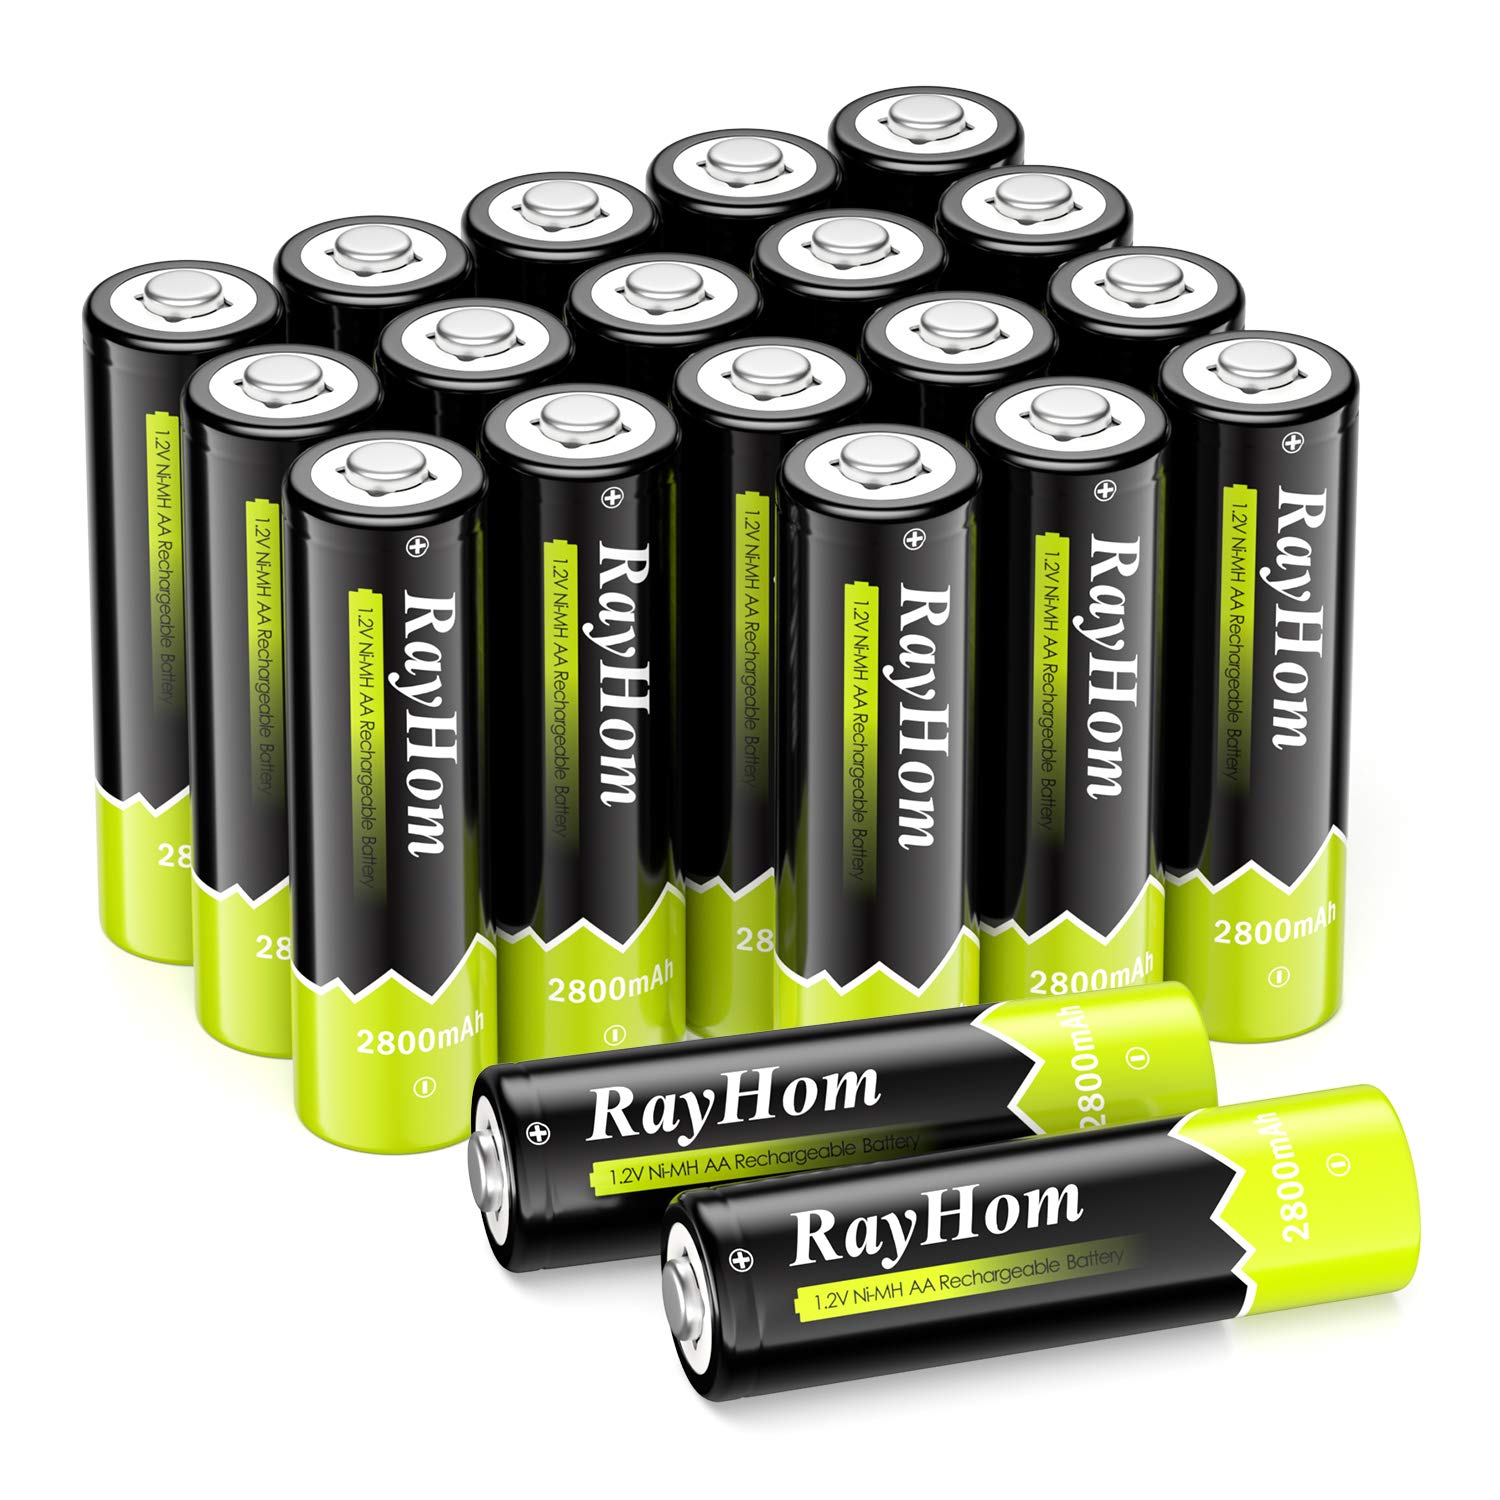 RayHom AA Rechargeable Battery 1.2 V 2800mAh Ni-MH AA Pre-Charged Batteries 20 Pack